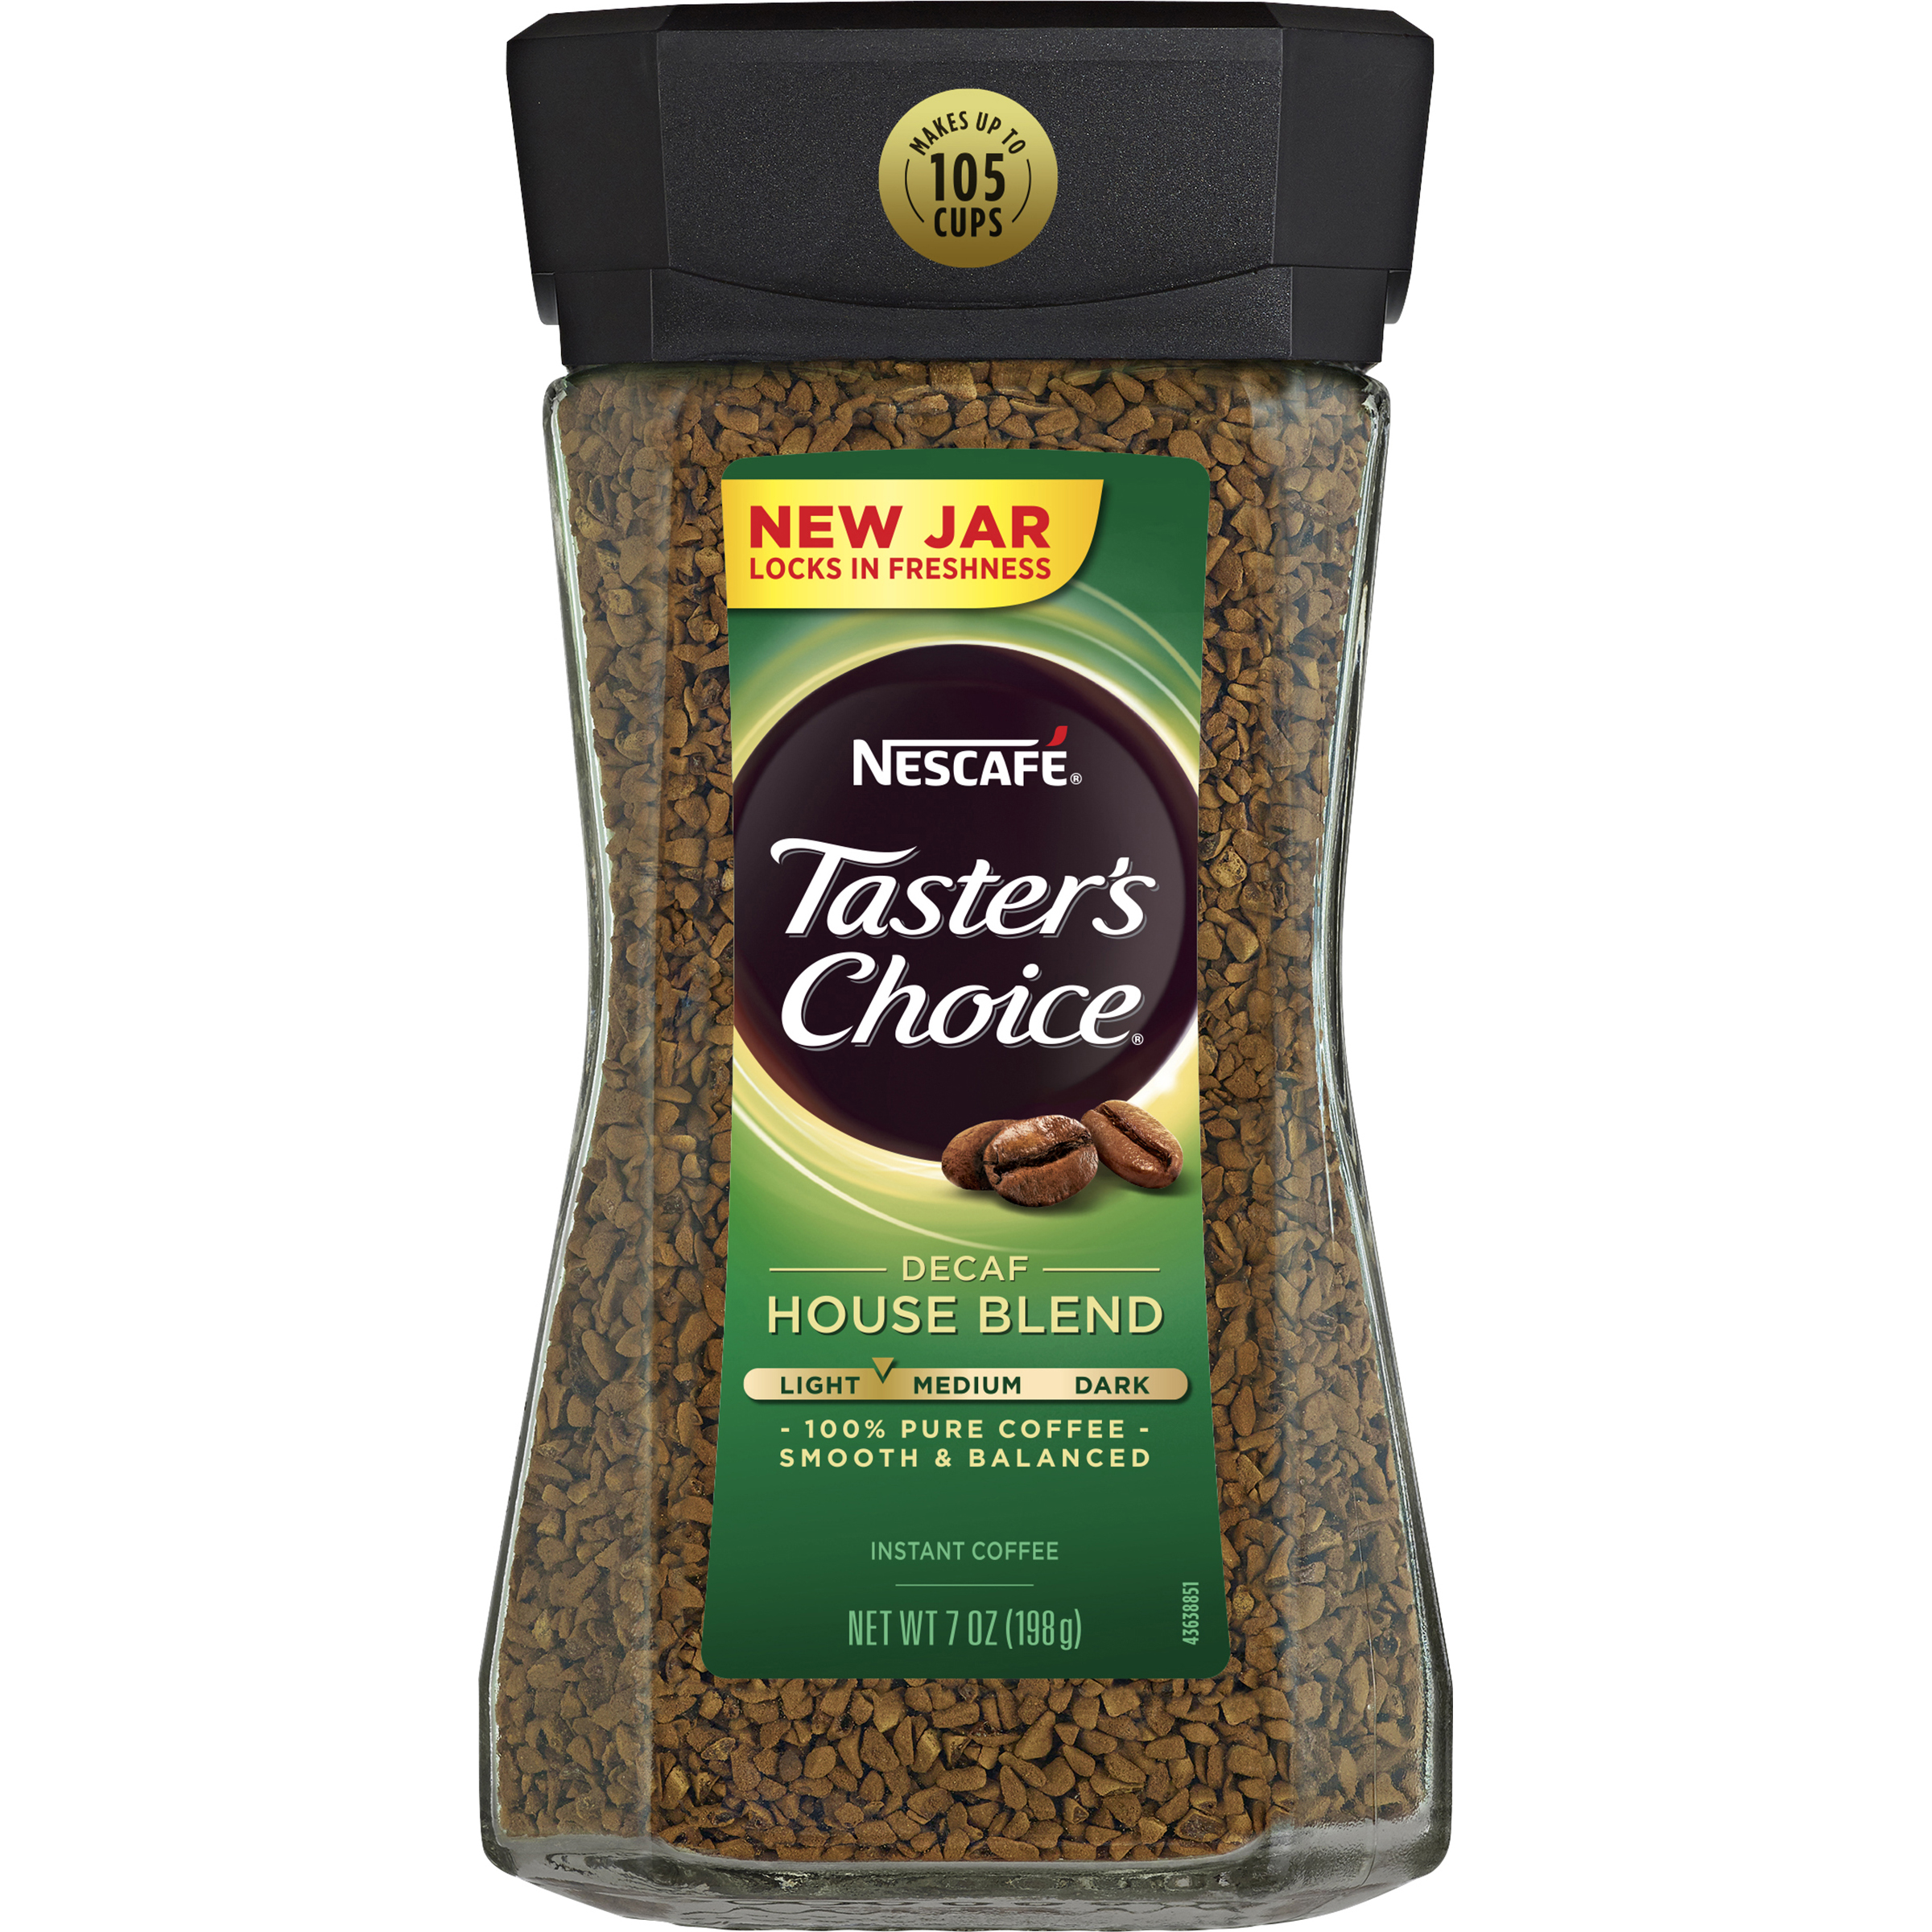 NESCAFE TASTER'S CHOICE Decaf House Blend Instant Coffee 7 oz. Jar